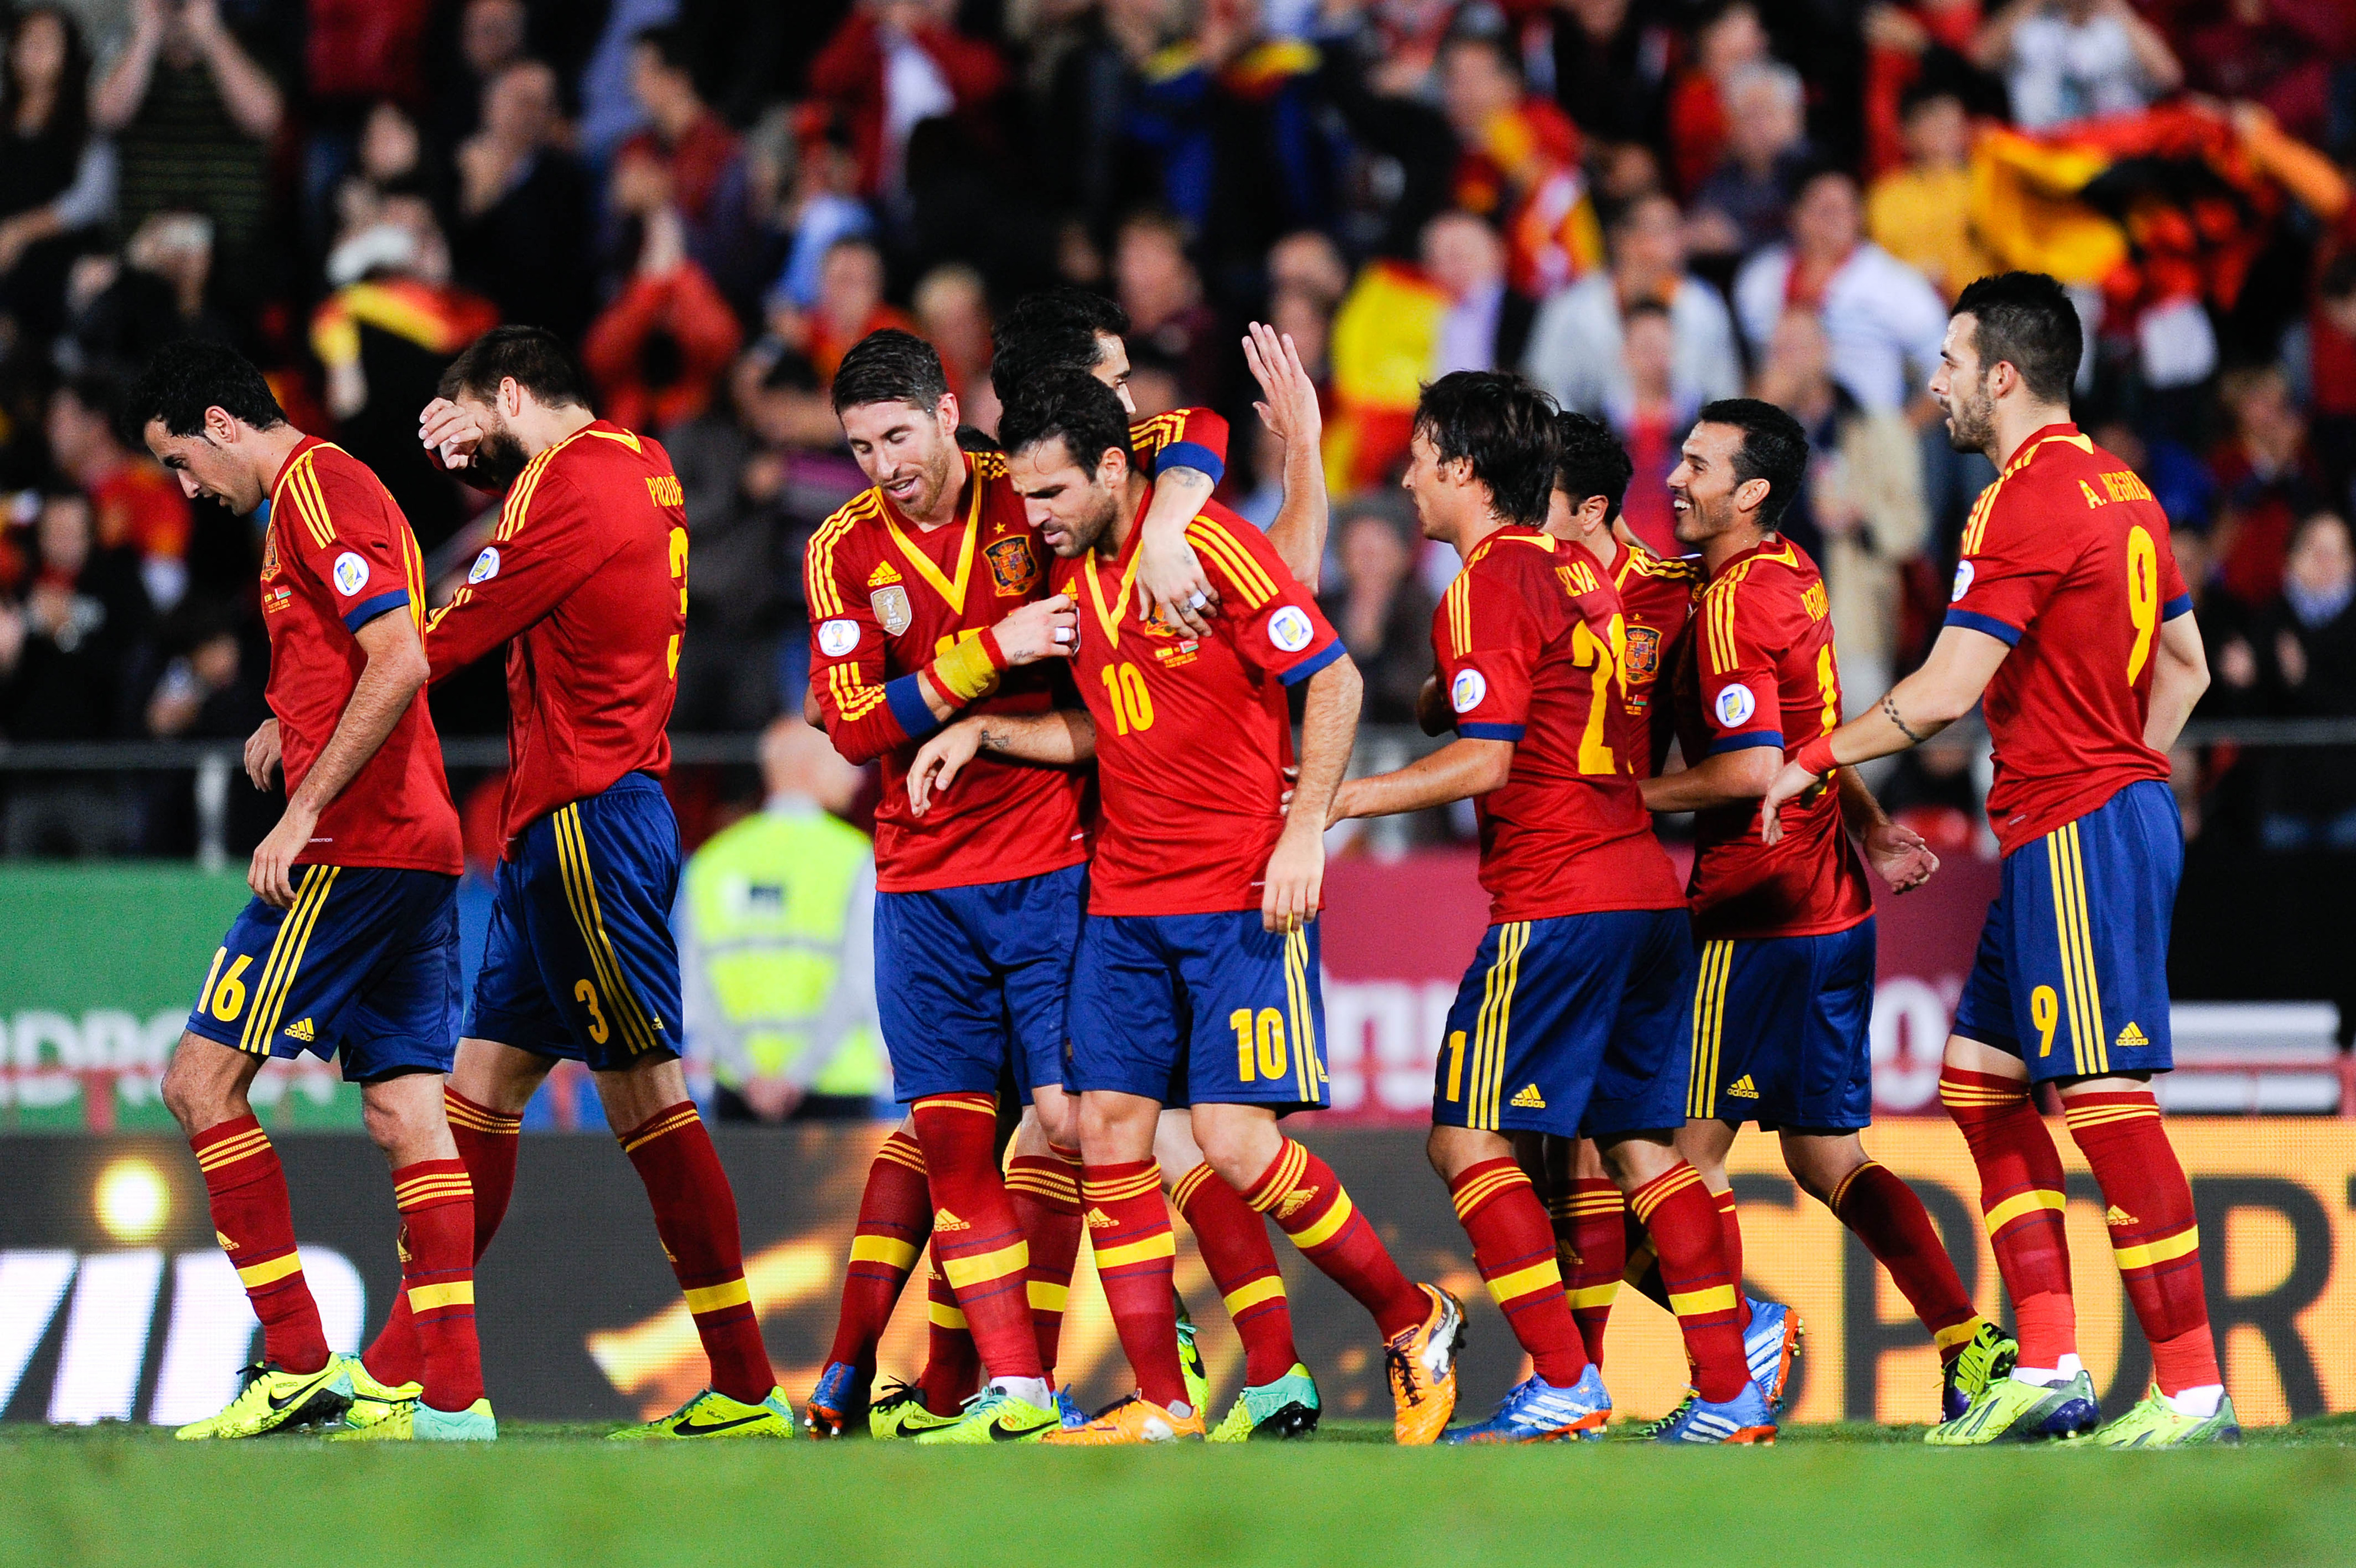 Spain seal ticket to 2014 World Cup